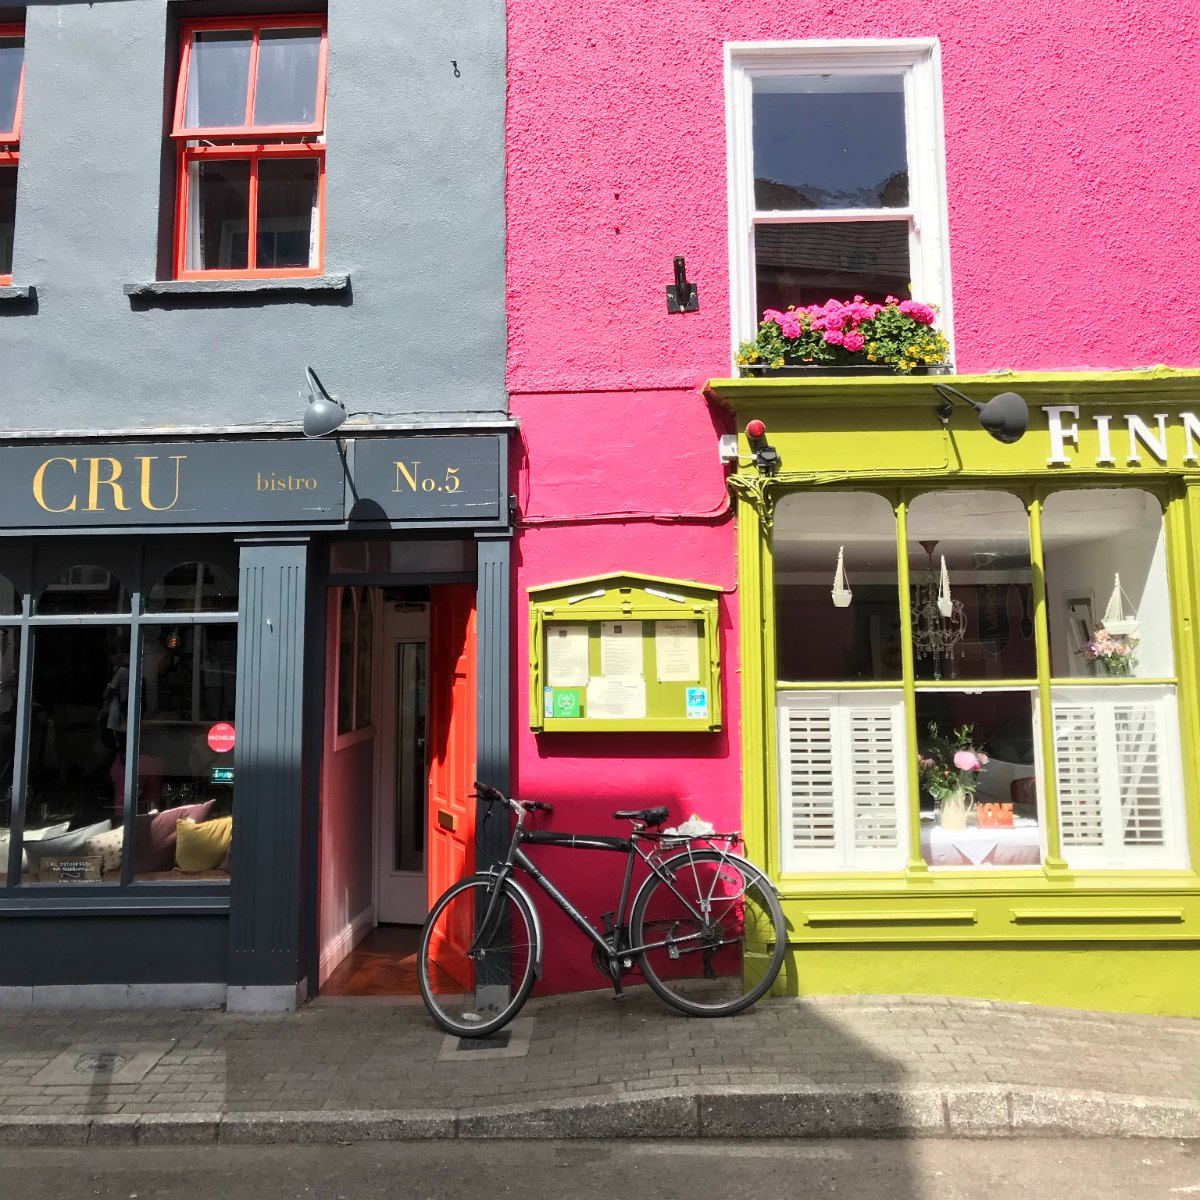 Snaphots from Ireland - Kinsale 8